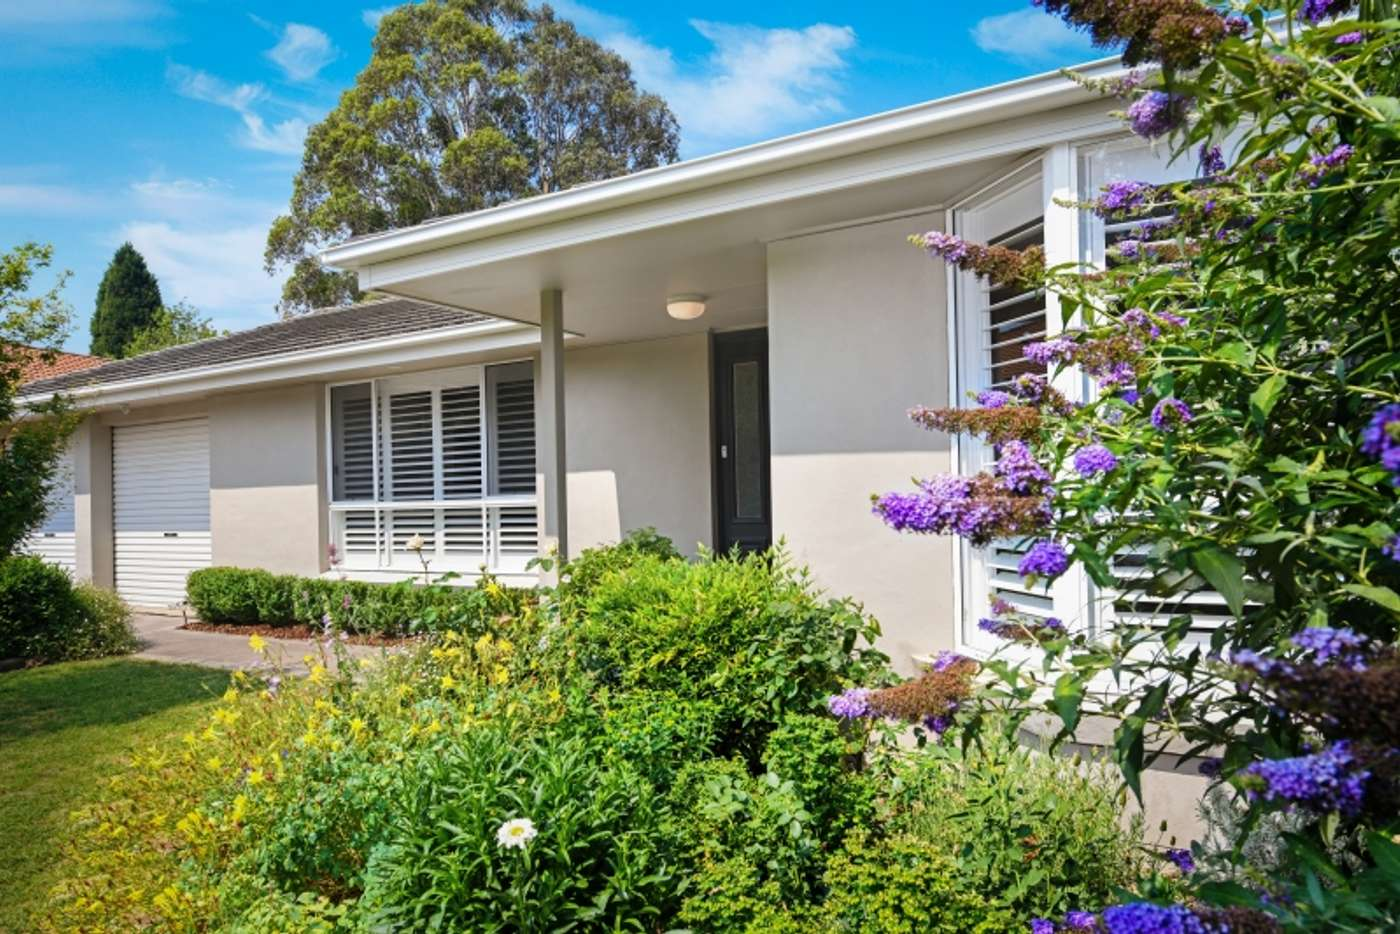 Main view of Homely house listing, 5 Edith Court, Bowral NSW 2576